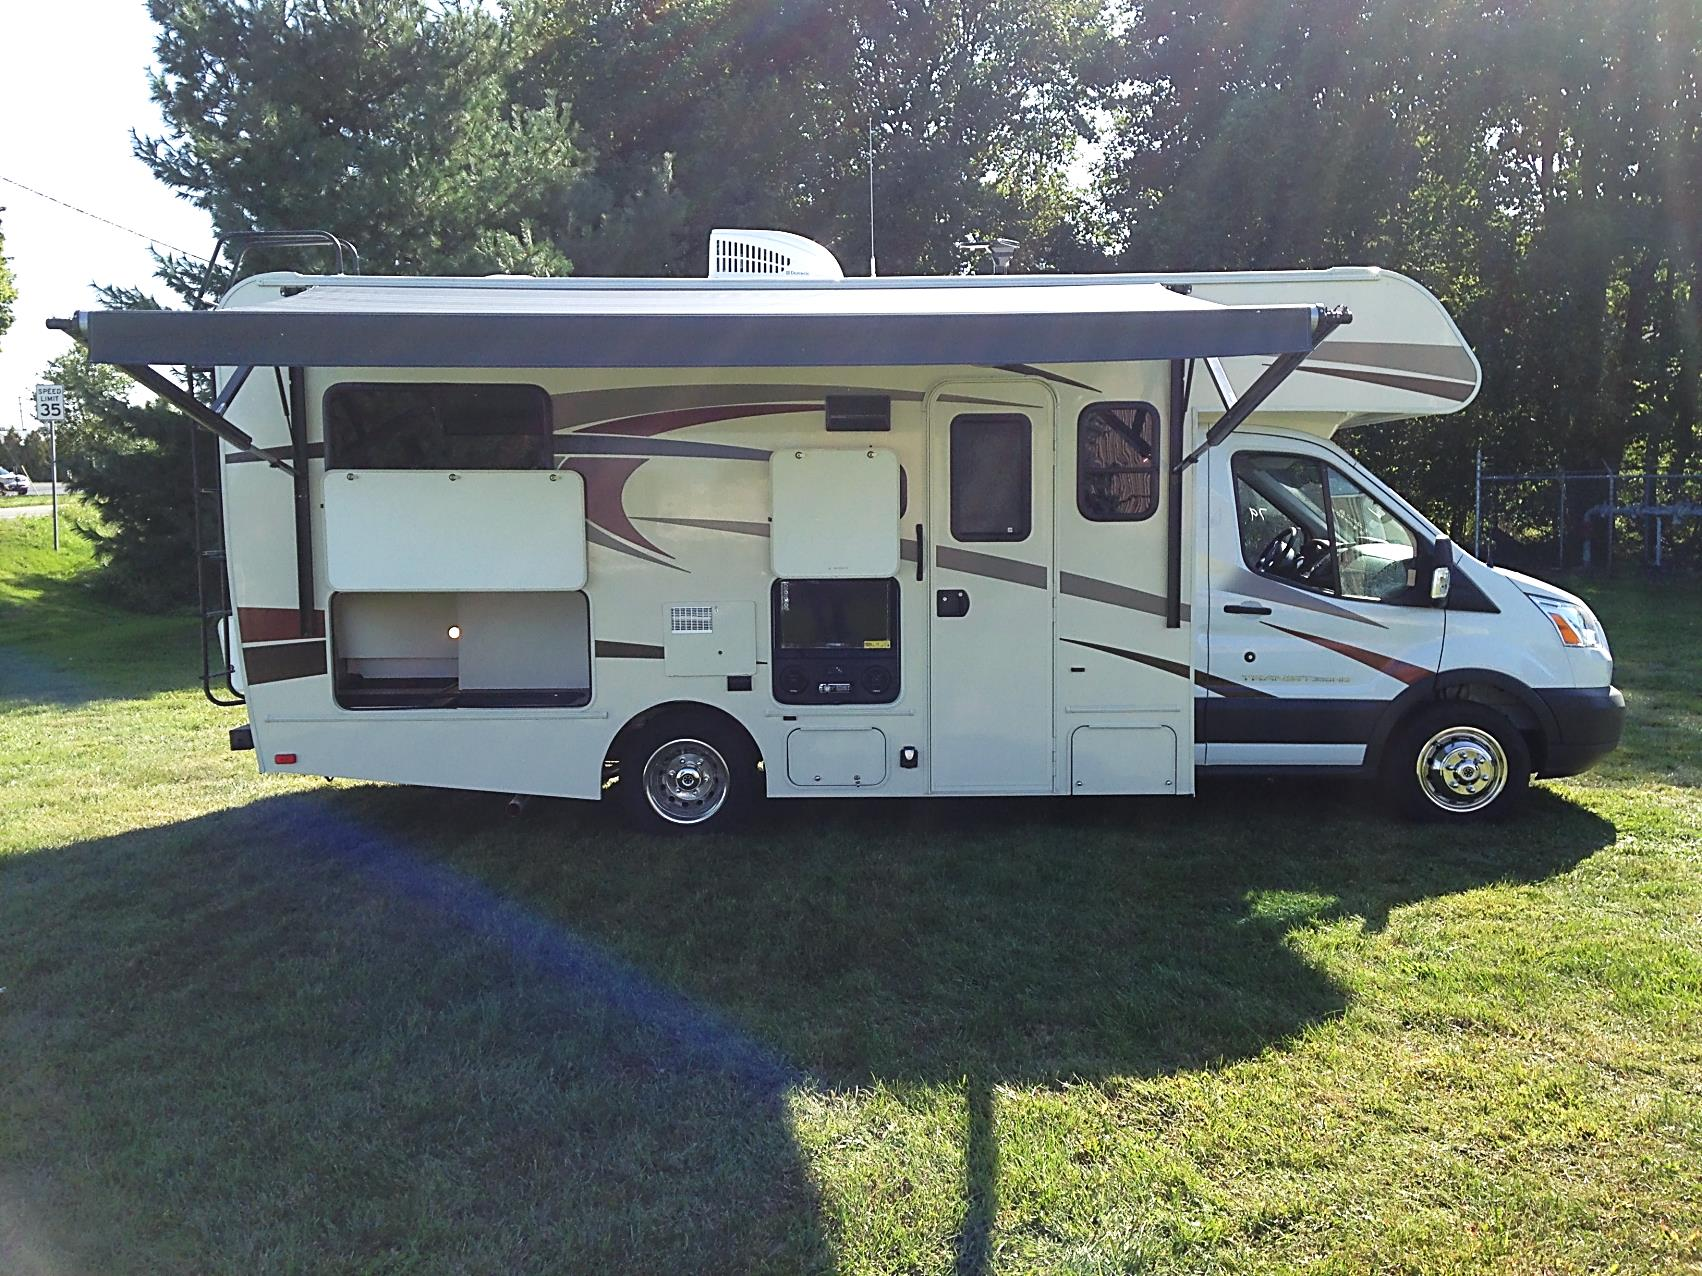 23ft Class C Coachmen Freelander Micro Y Motorhome Rental California